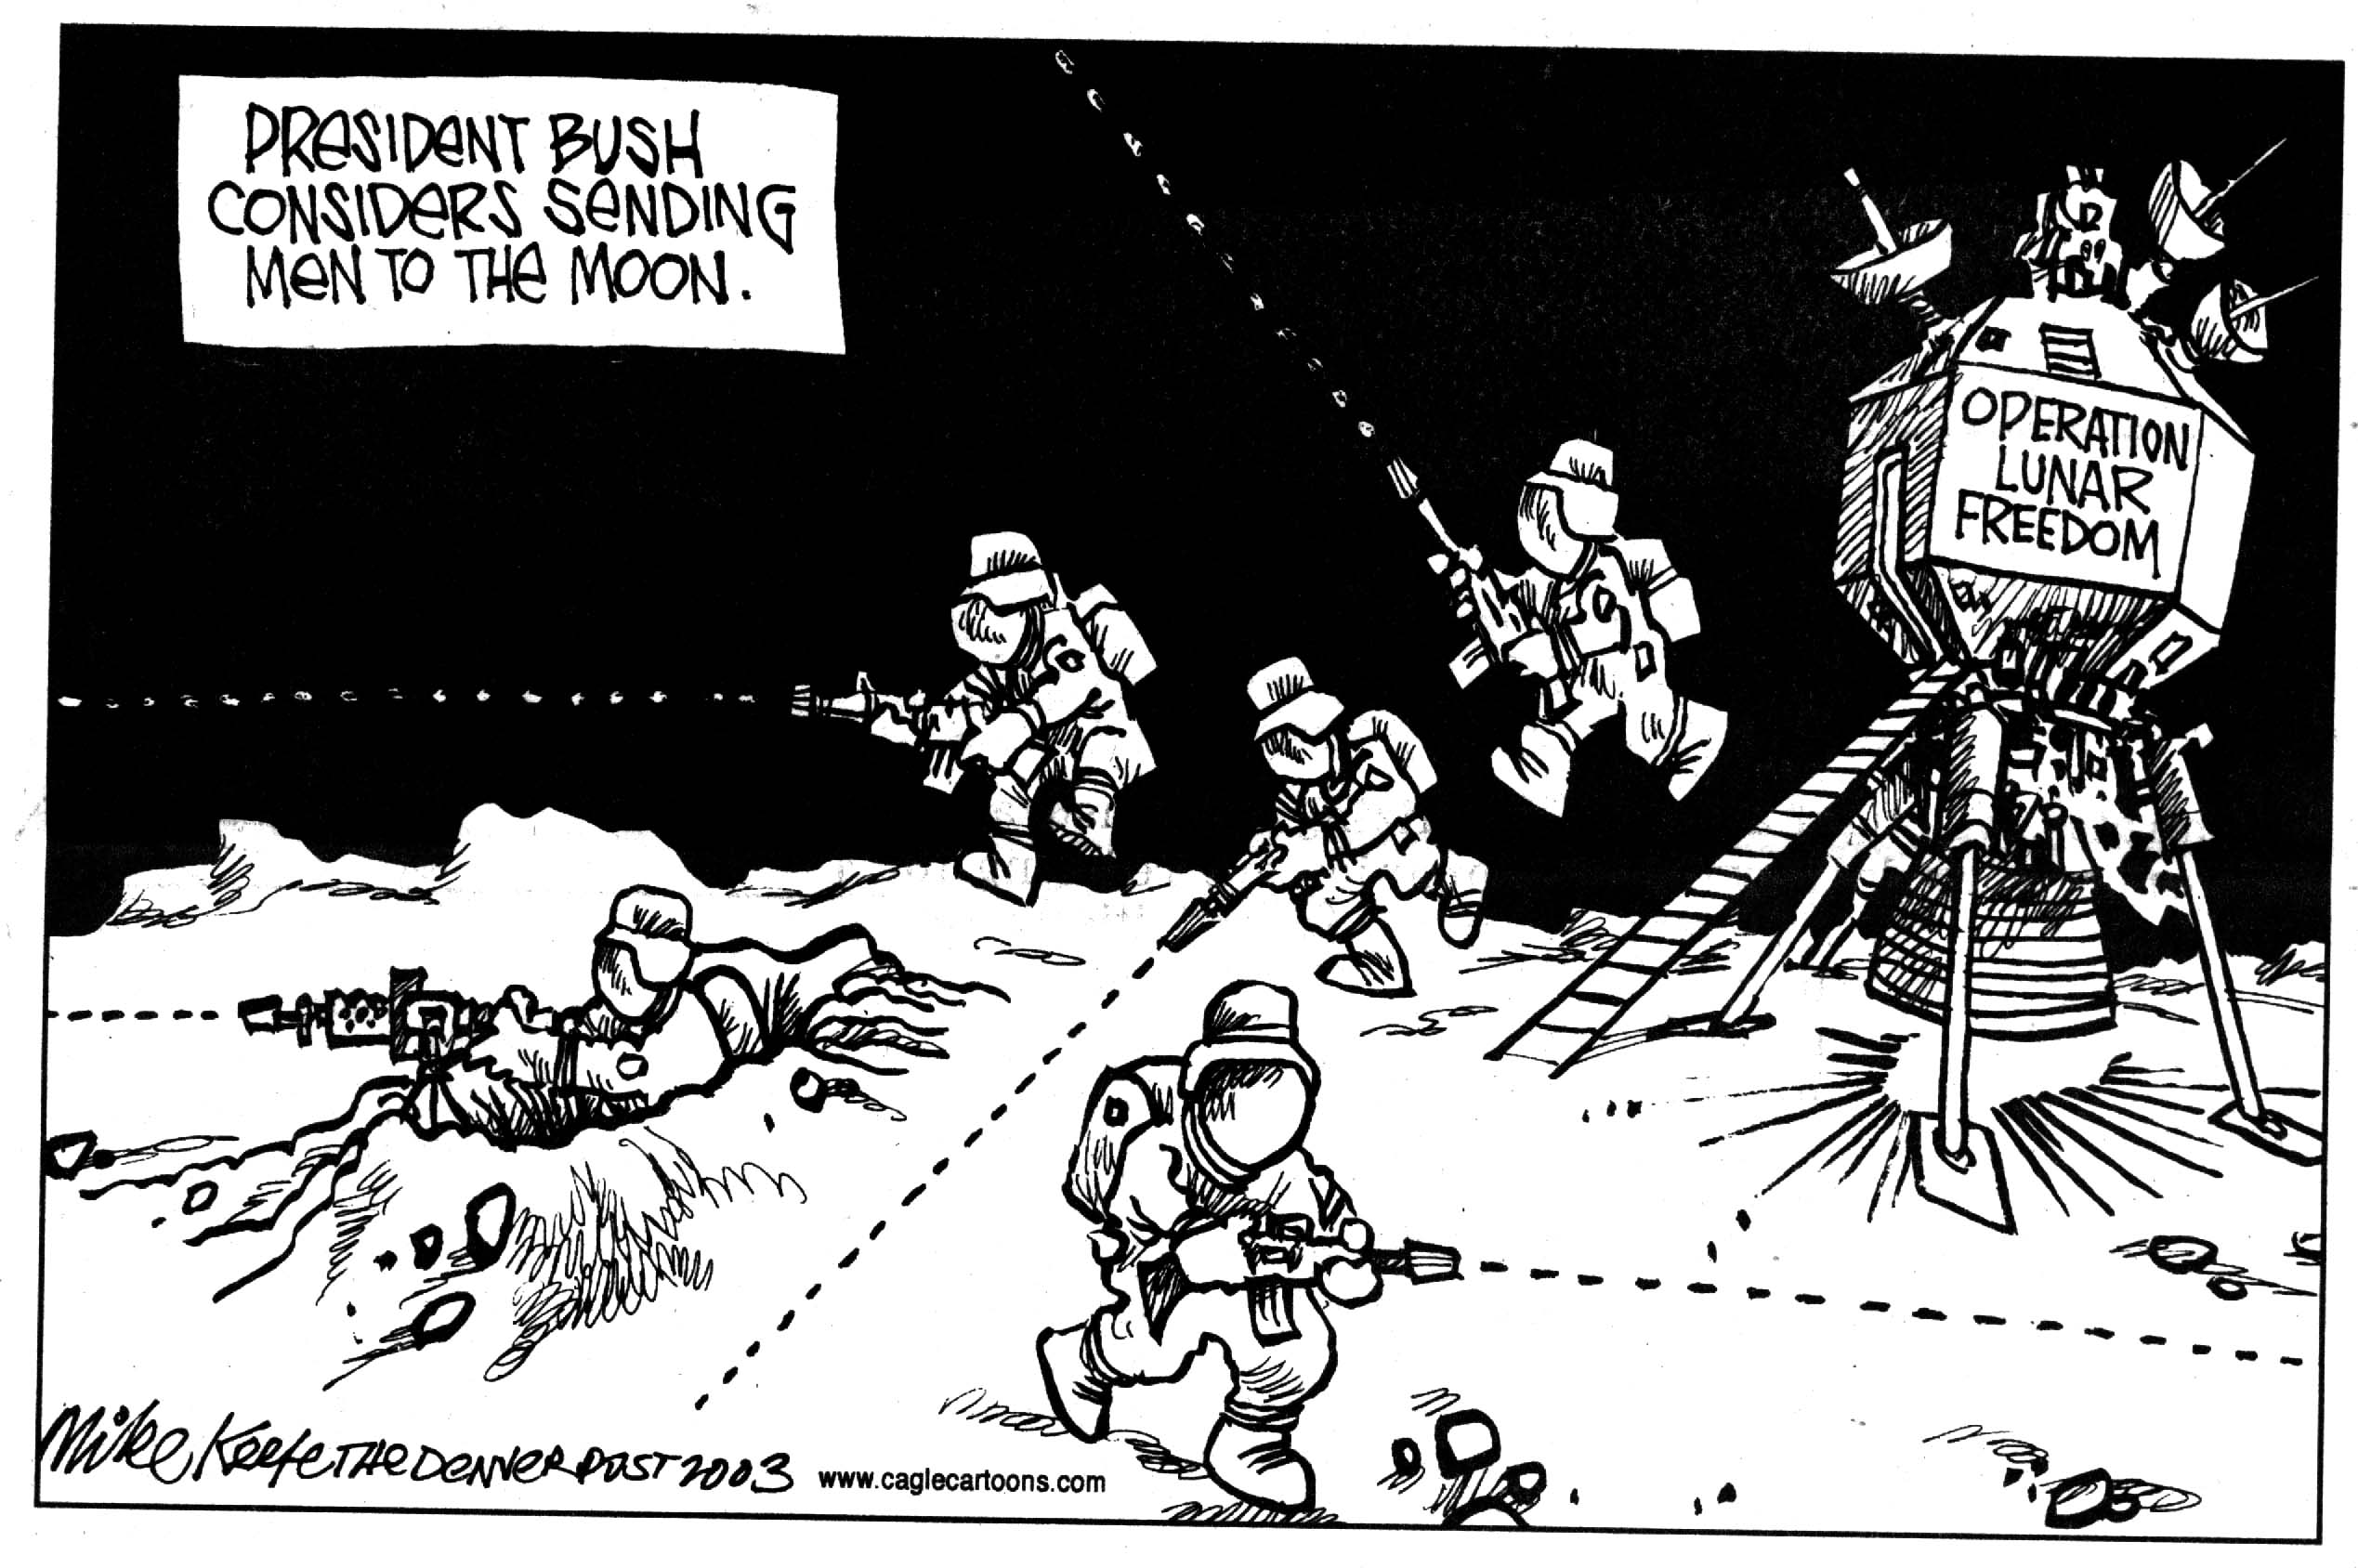 space%20treaty%20debated%20cartoon.jpg